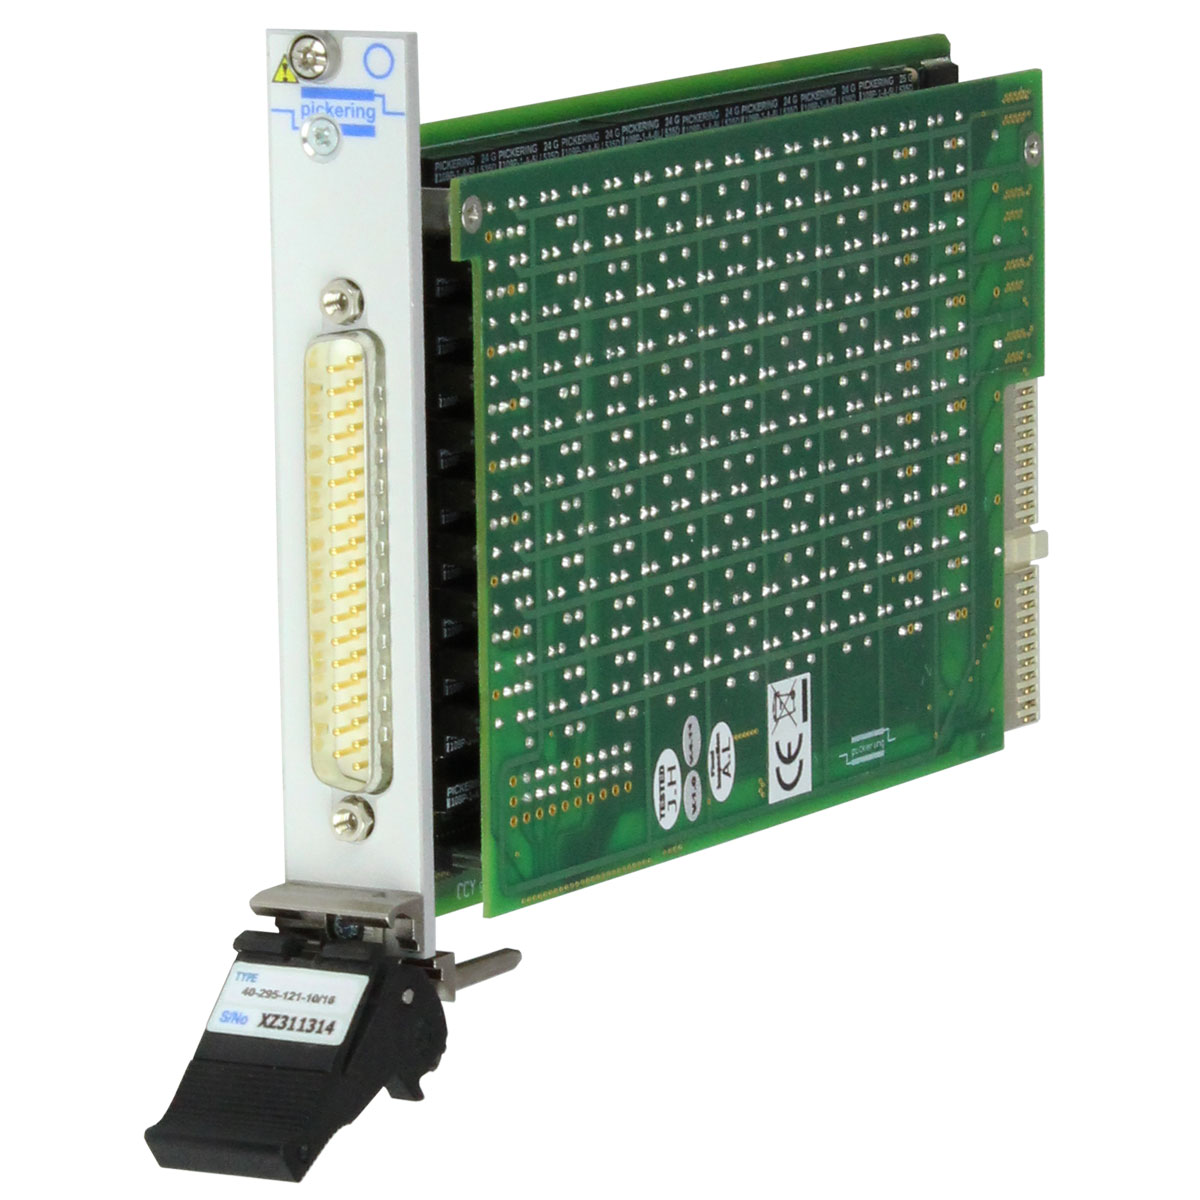 Programmable Resistor Module - 40-295 used to simulate high-resistance faults